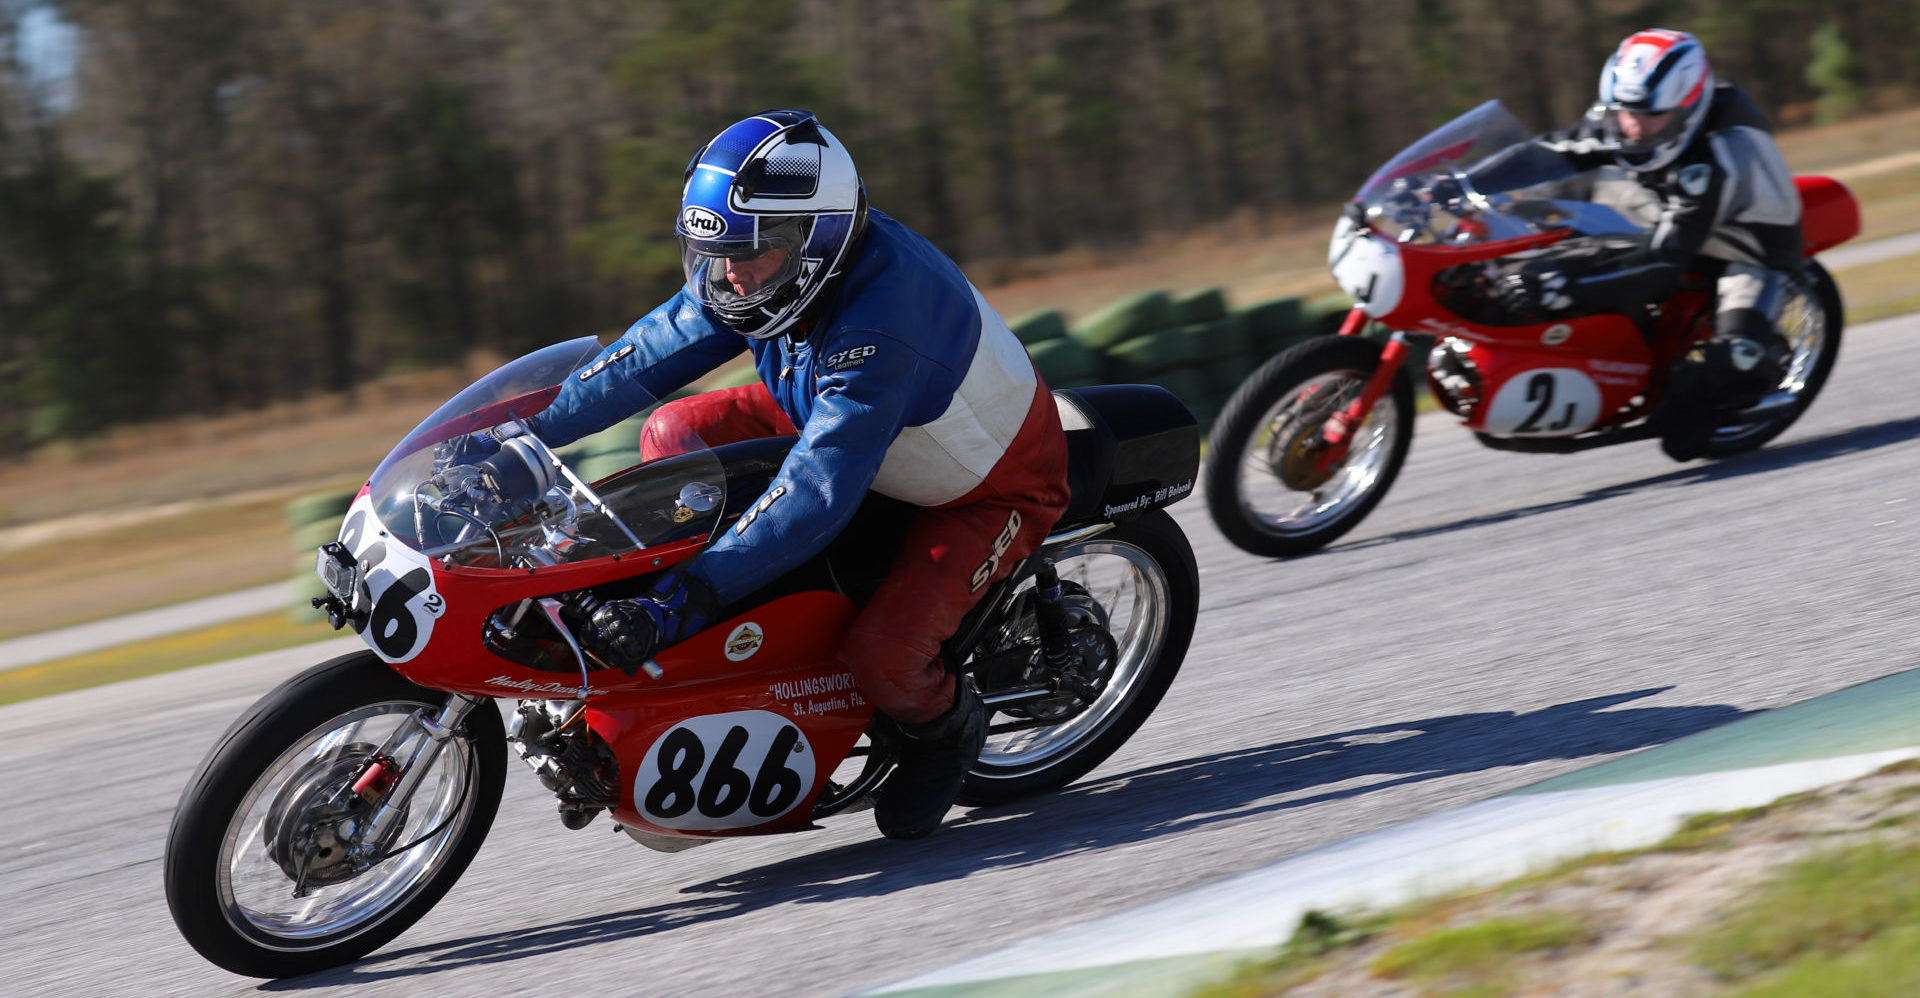 AHRMA racers Jonathan Hollingsworth (2J) and Dick Hollingsworth (866) in action. Photo by etechphoto.com, courtesy AHRMA.